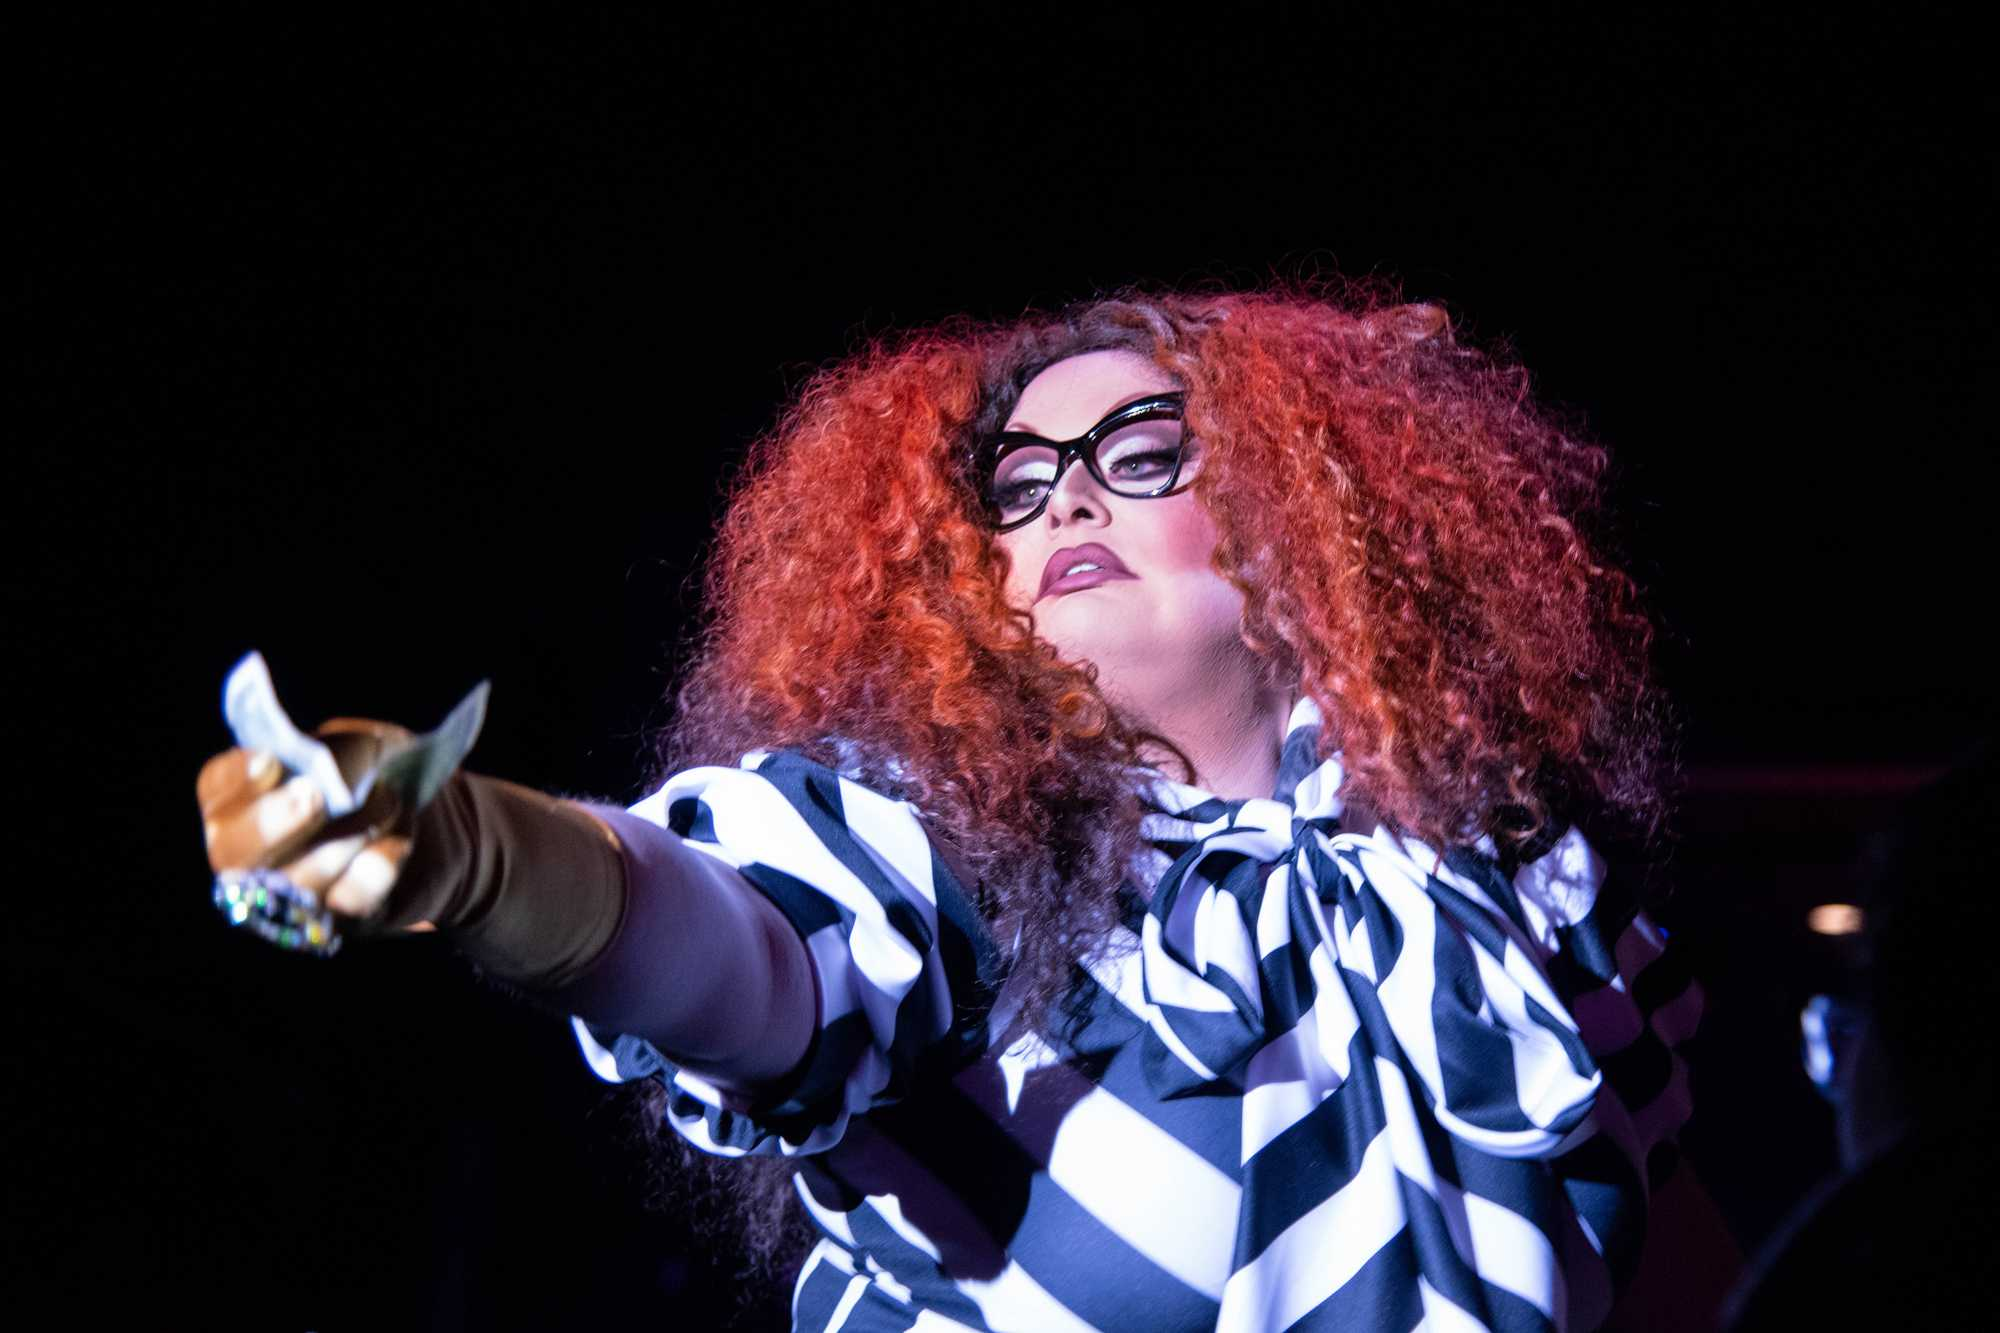 Pro Drag Show celebrates individuality and free expression